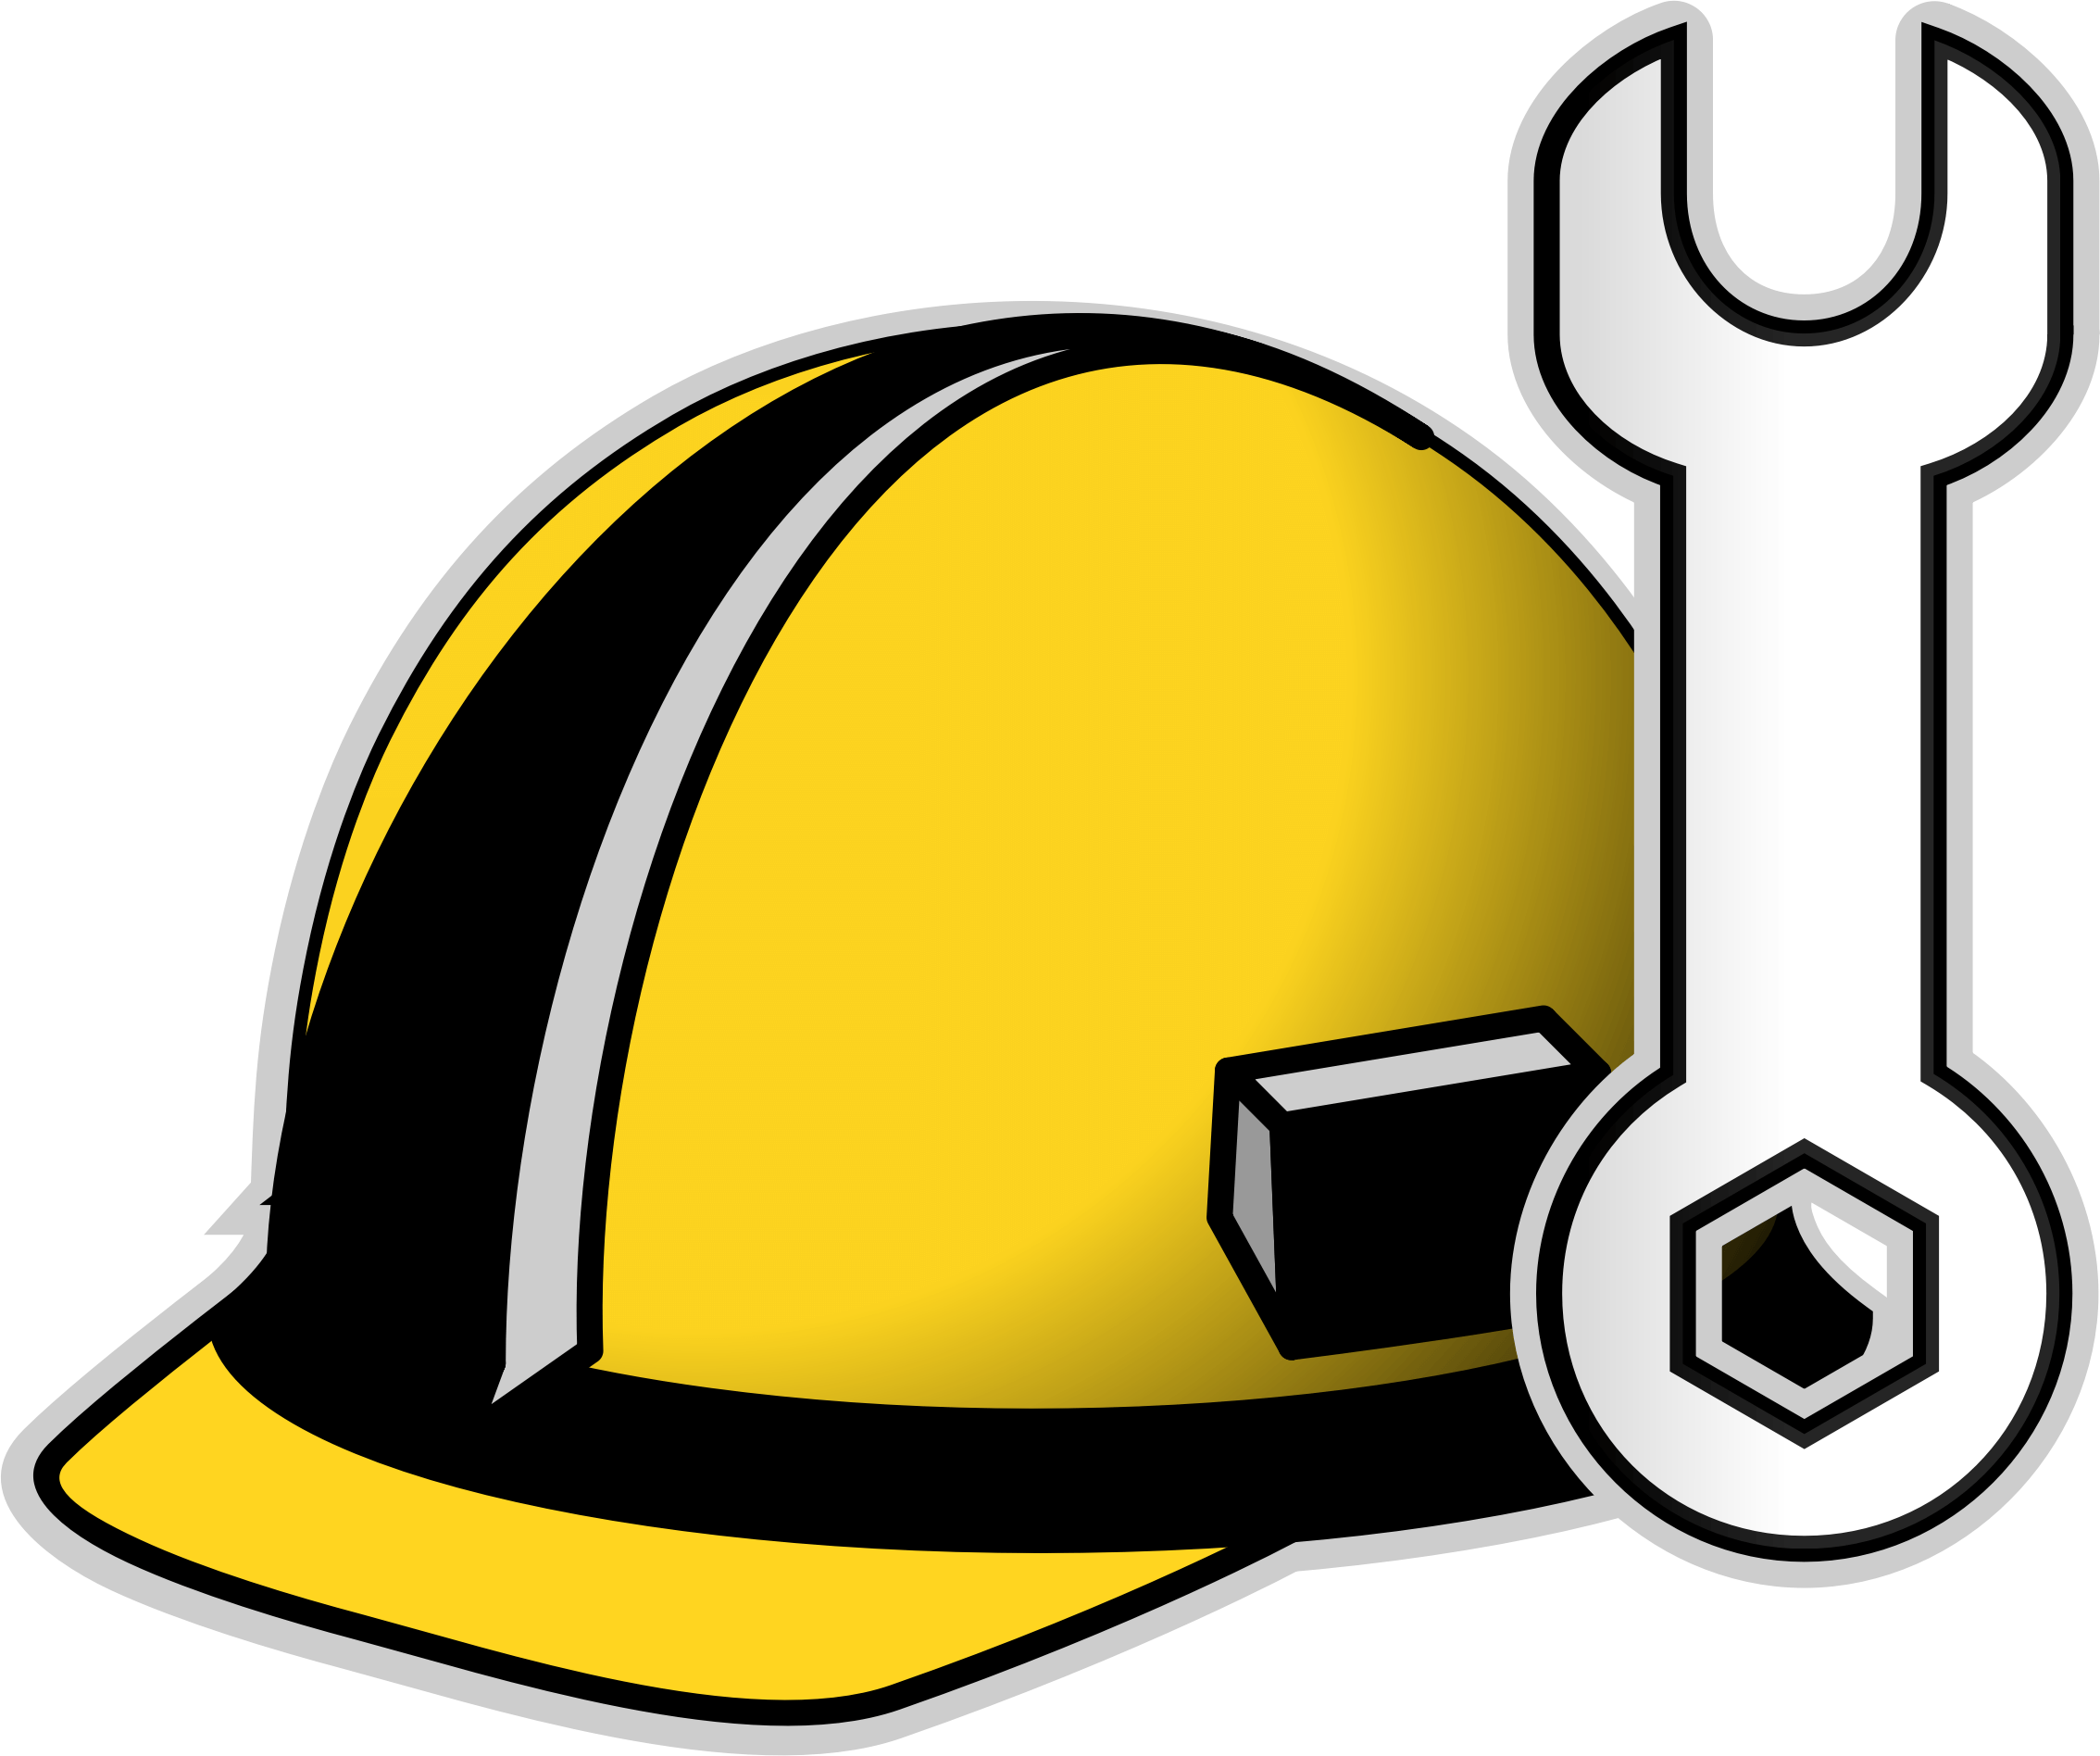 Engineer tools clipart banner library Free Engineering Cliparts Border, Download Free Clip Art, Free Clip ... banner library